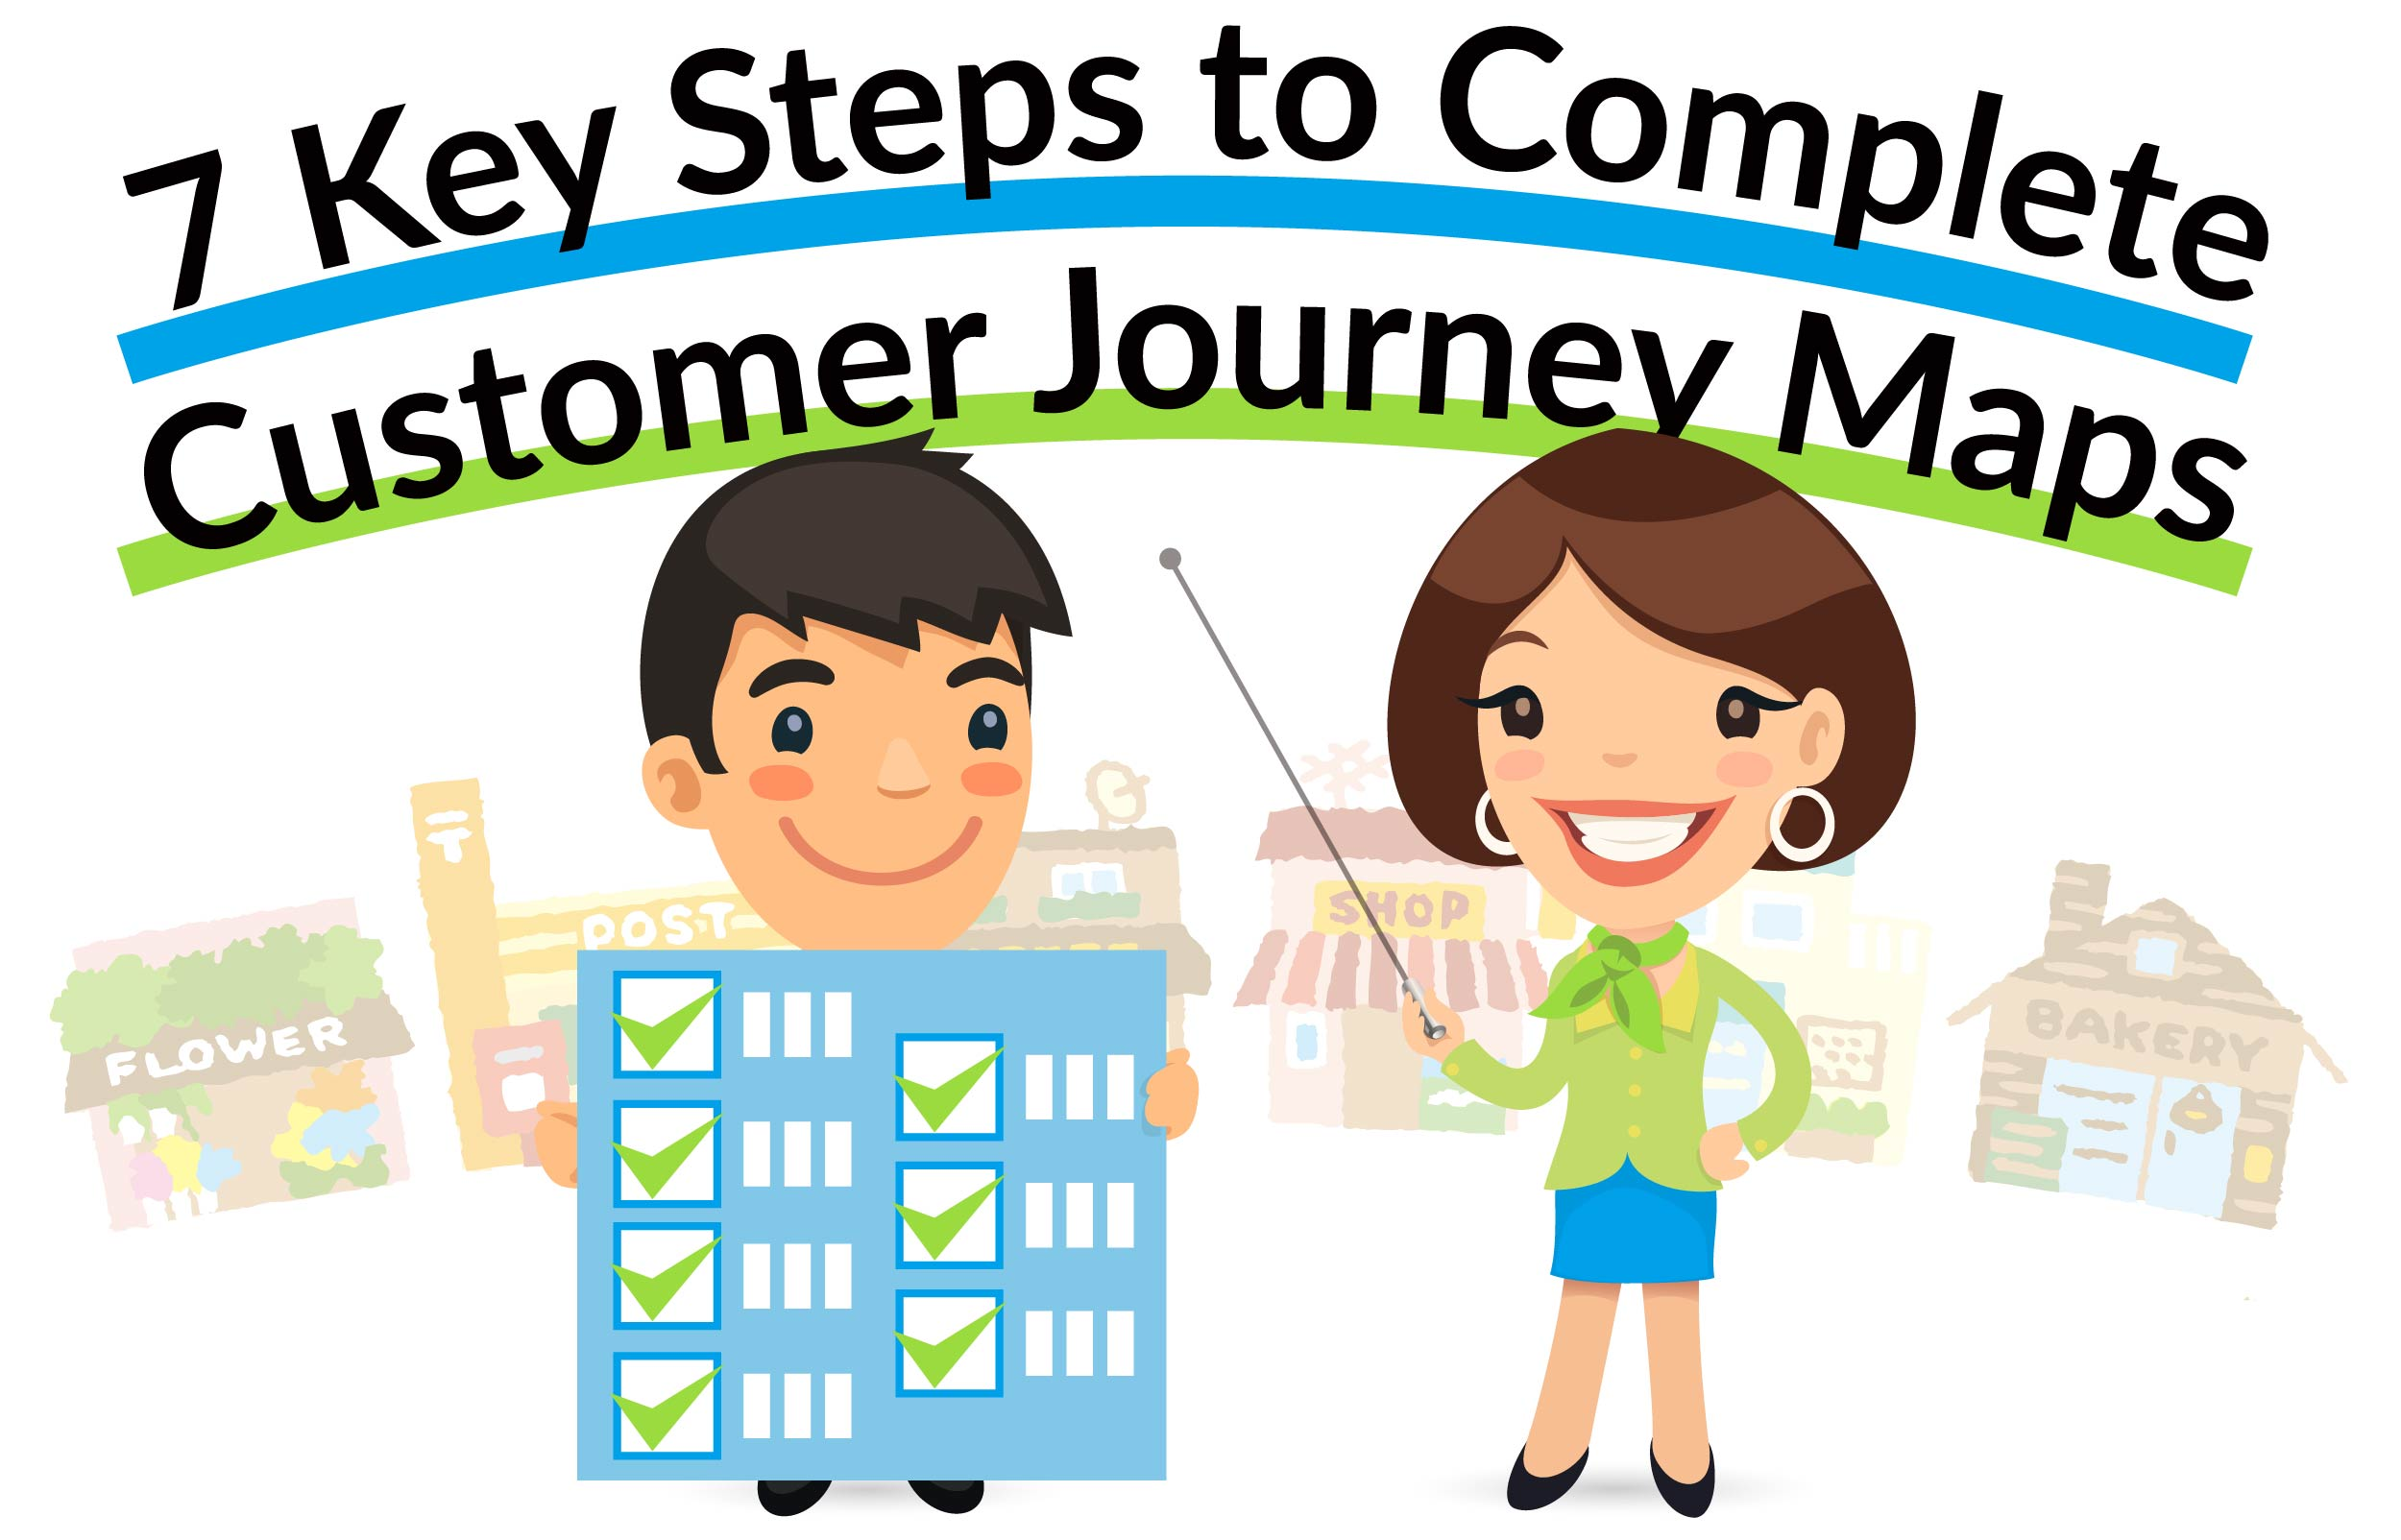 7 Key Steps to Complete Customer Journey Maps